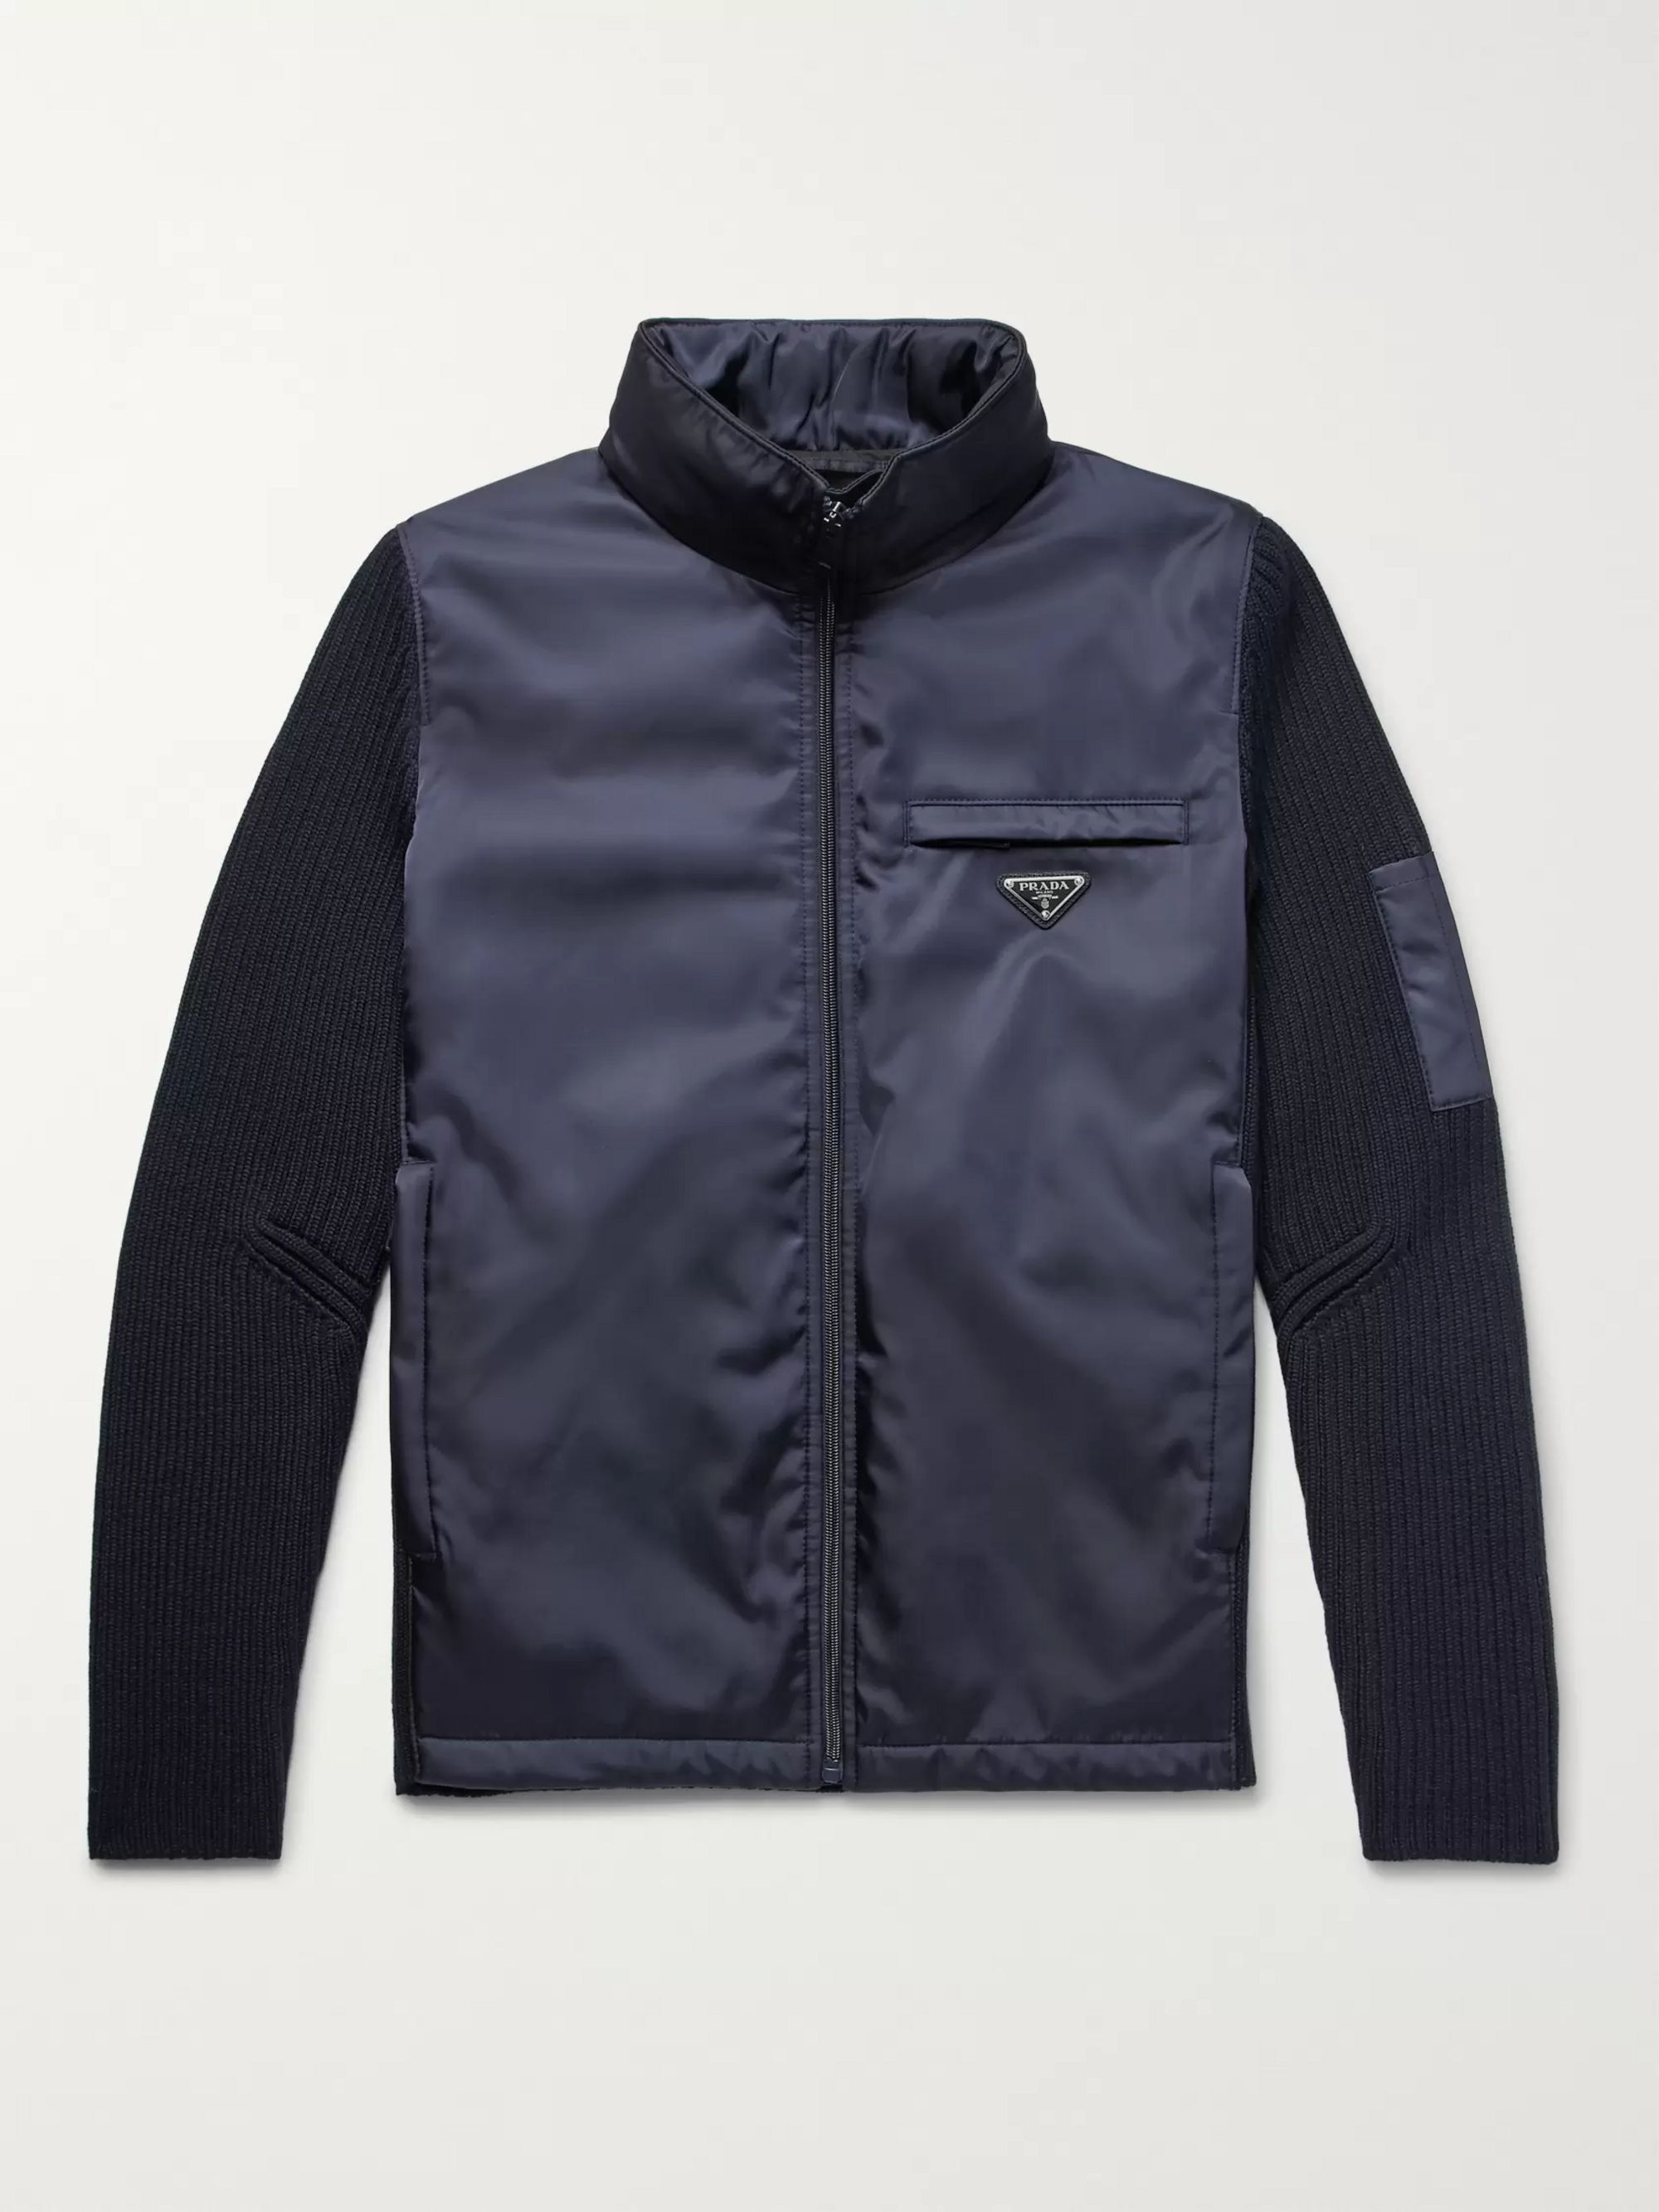 Prada Slim-Fit Shell and Ribbed Virgin Wool Hooded Jacket